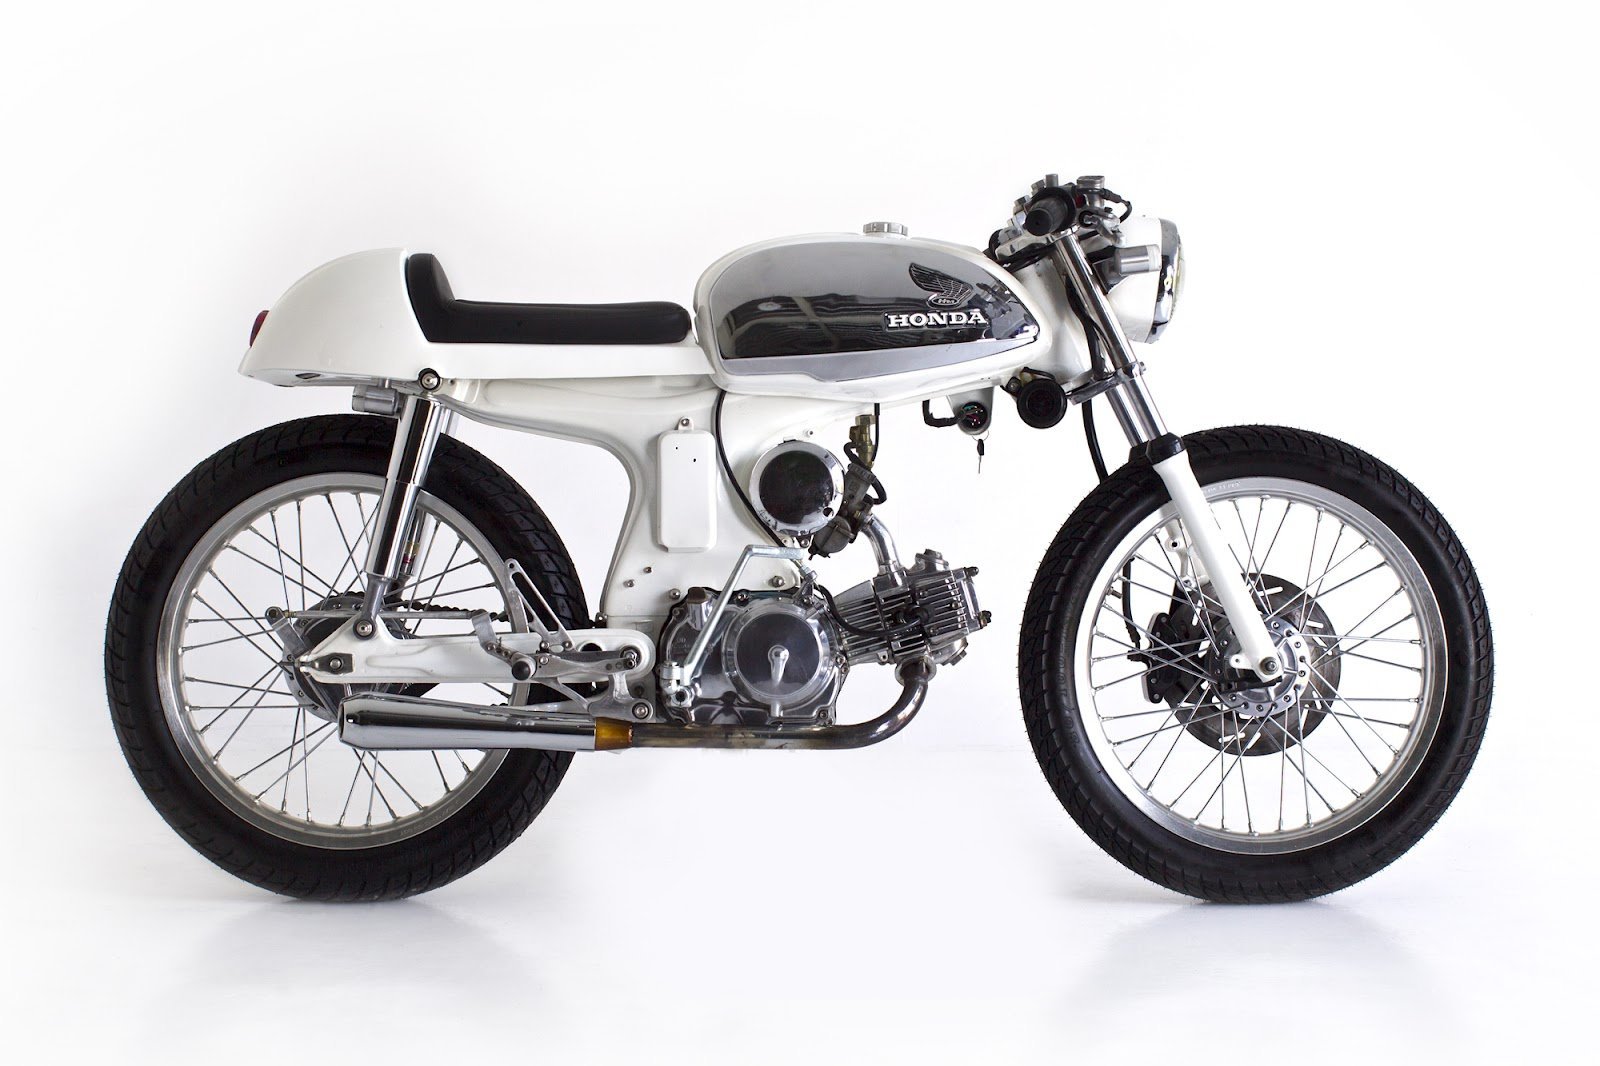 honda s90 cafe racer by deus return of the cafe racers. Black Bedroom Furniture Sets. Home Design Ideas